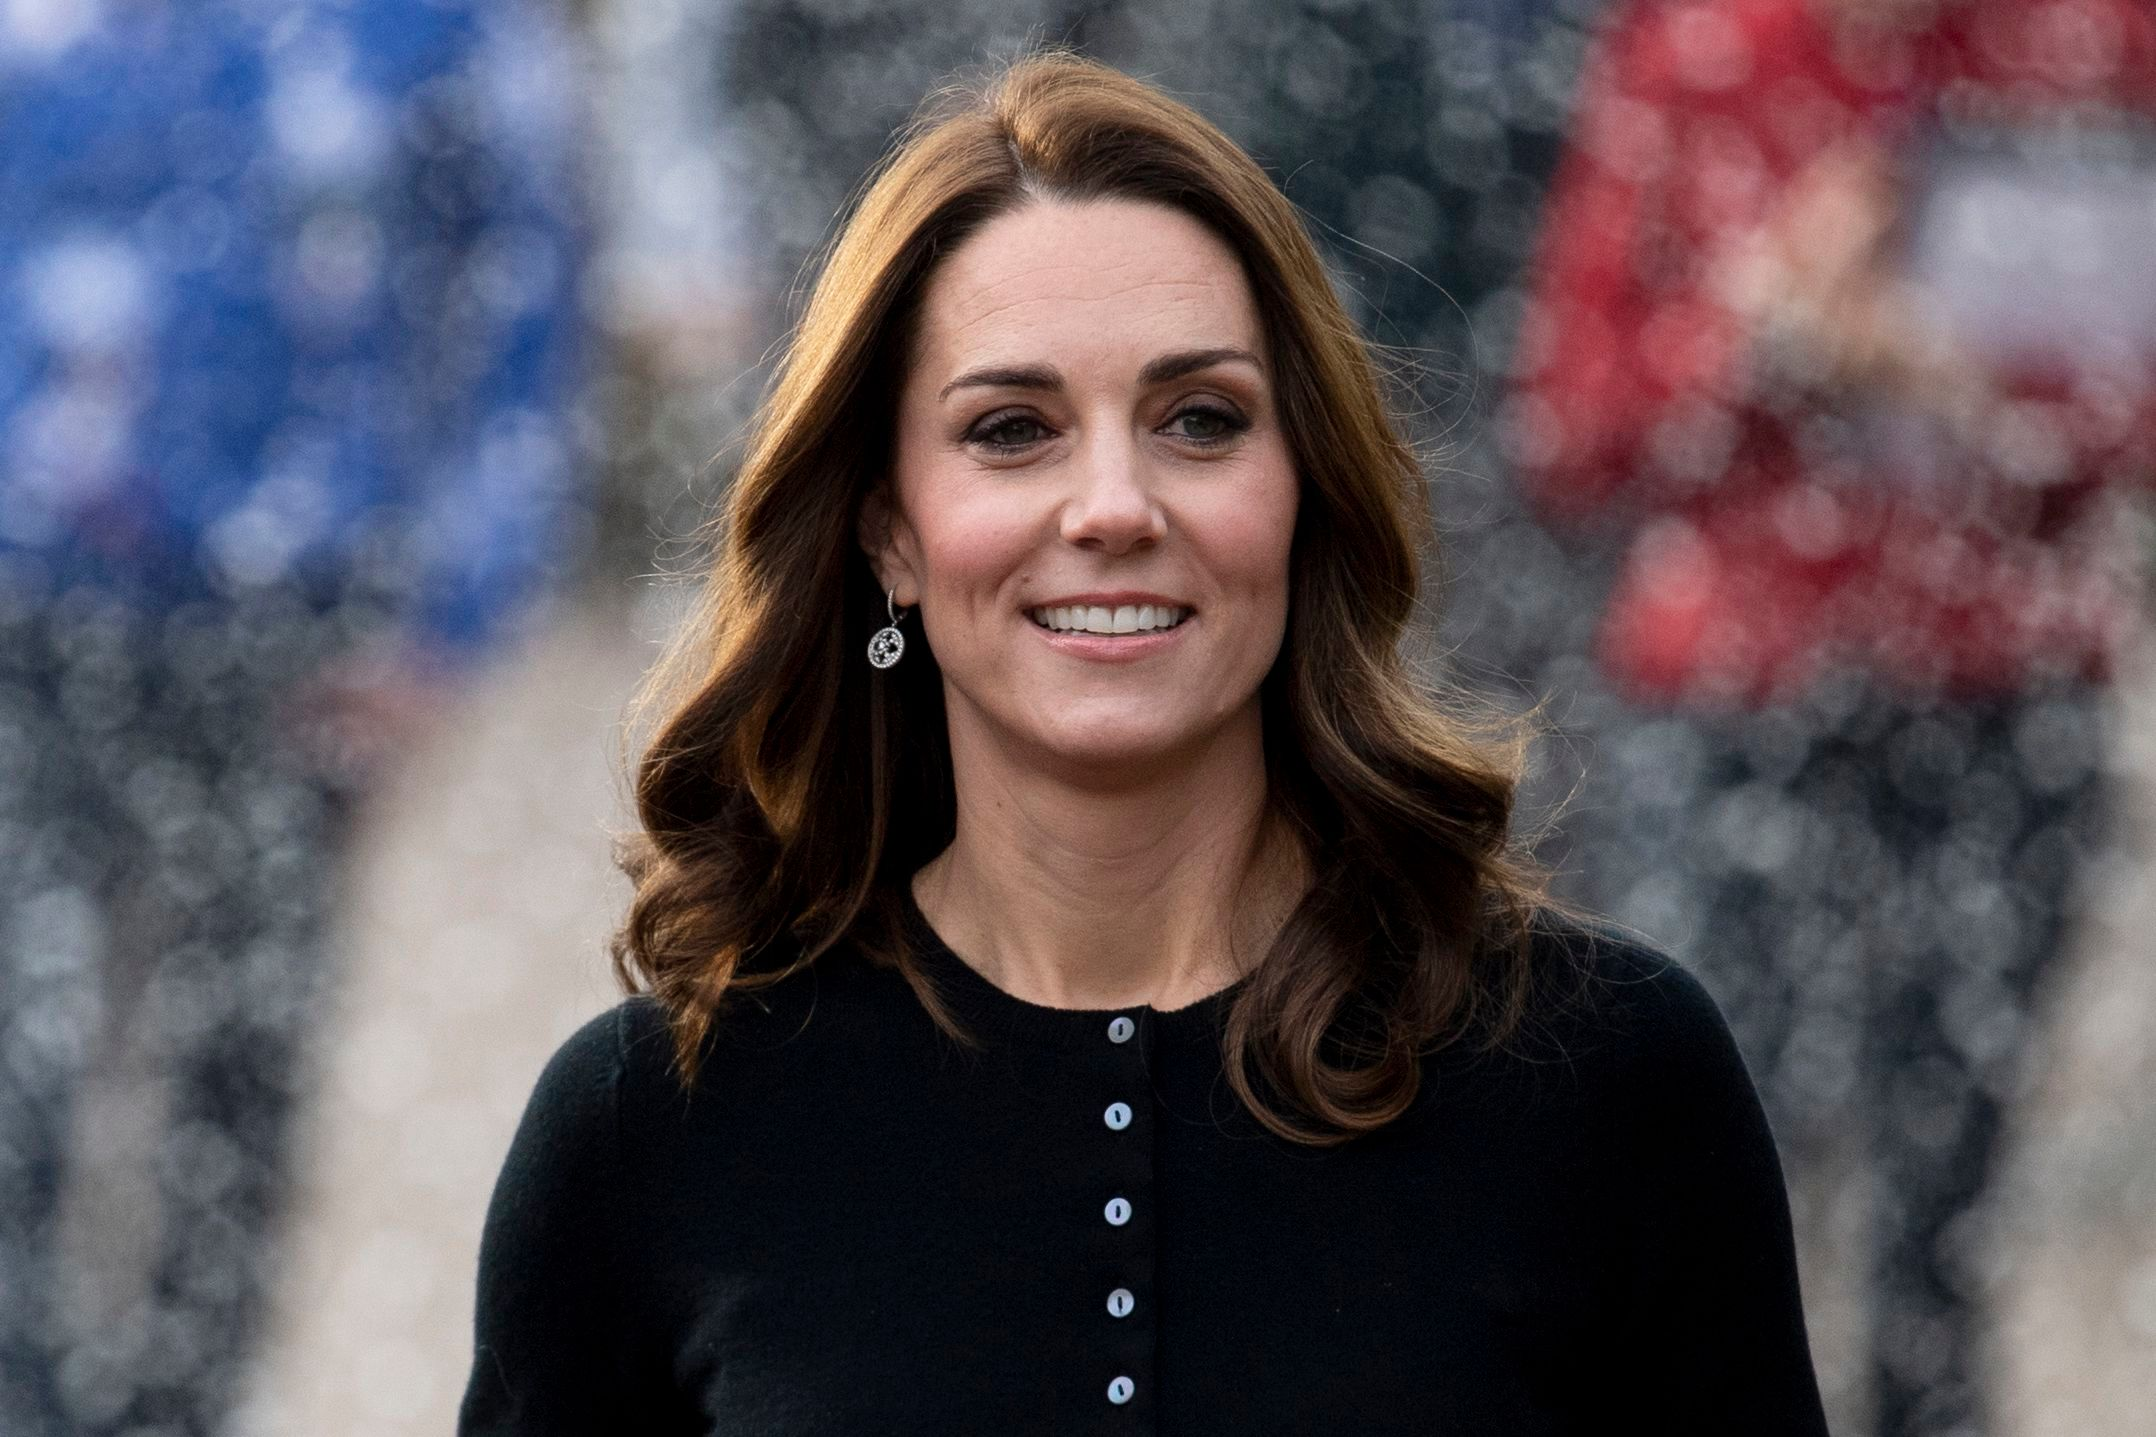 Britain's Catherine, Duchess of Cambridge arrives with her husband, the Duke of Cambridge (unseen), to host a Christmas Party for the families of serving Royal Air Force (RAF) personnel at the Kensington Palace Orangery in Central London, Britain, 04 December 2018.Duke and Duchess of Cambridge host Christmas Party for RAF familes at Kensington Palace, London, United Kingdom - 04 Dec 2018